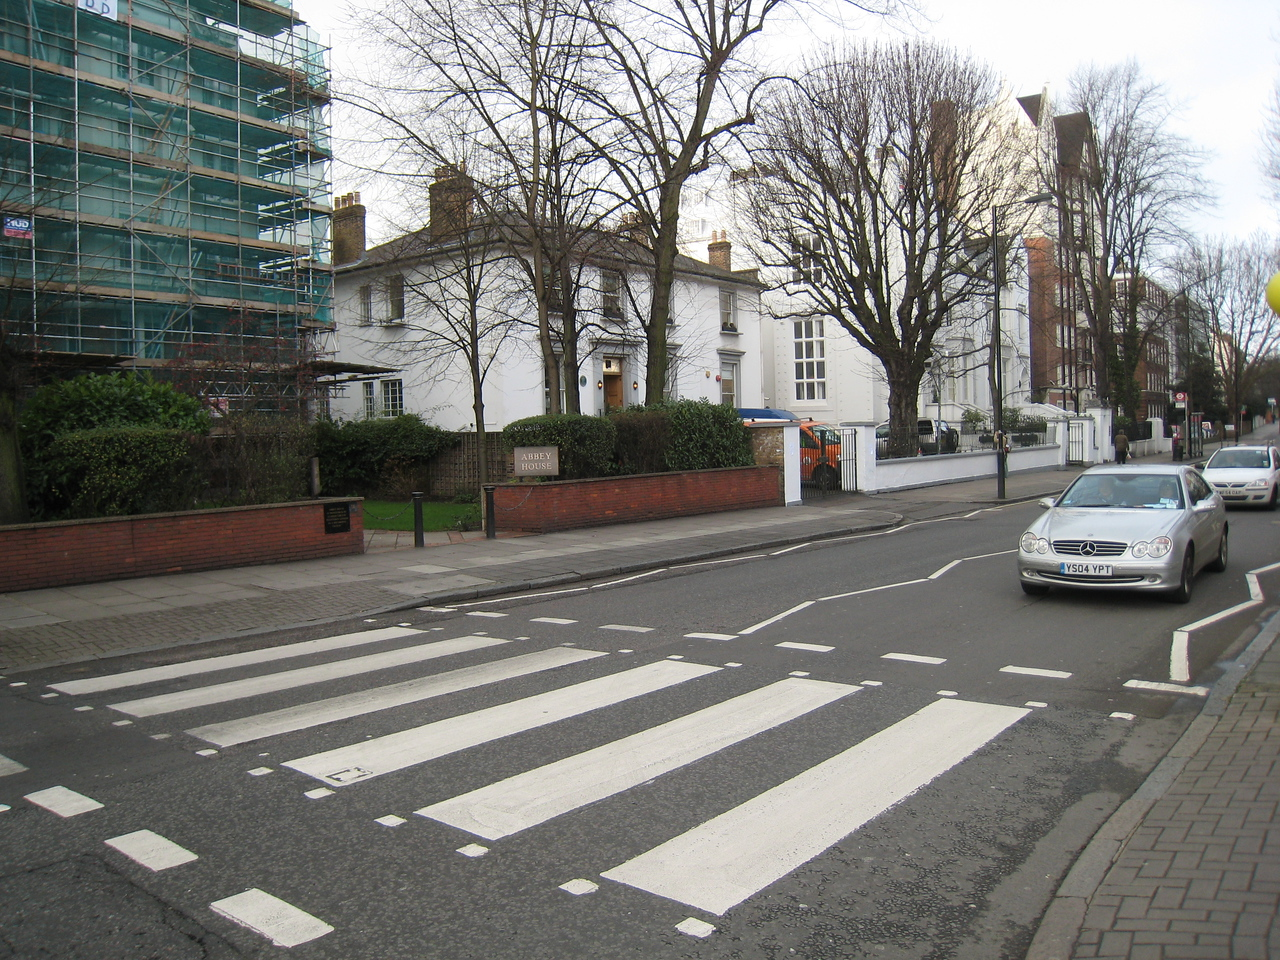 The most famous crosswalk in the world (Abbey Road)